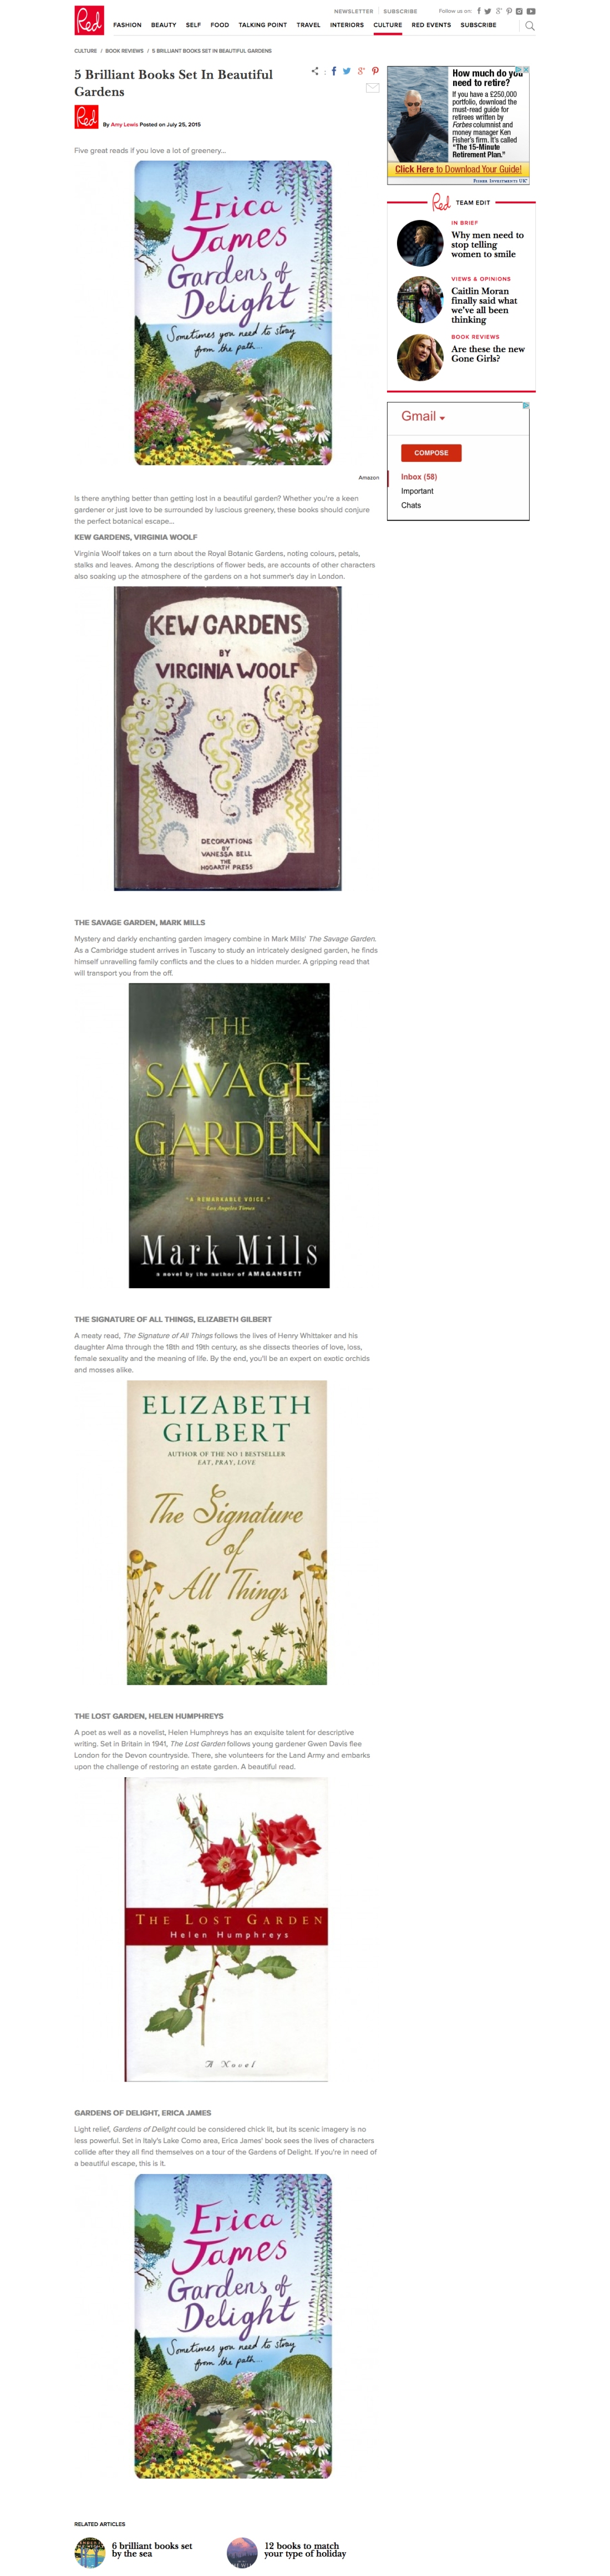 5_brilliant_books_set_in_beautiful_gardens_-_Red_Online_-_2016-03-24_09.58.12 copy